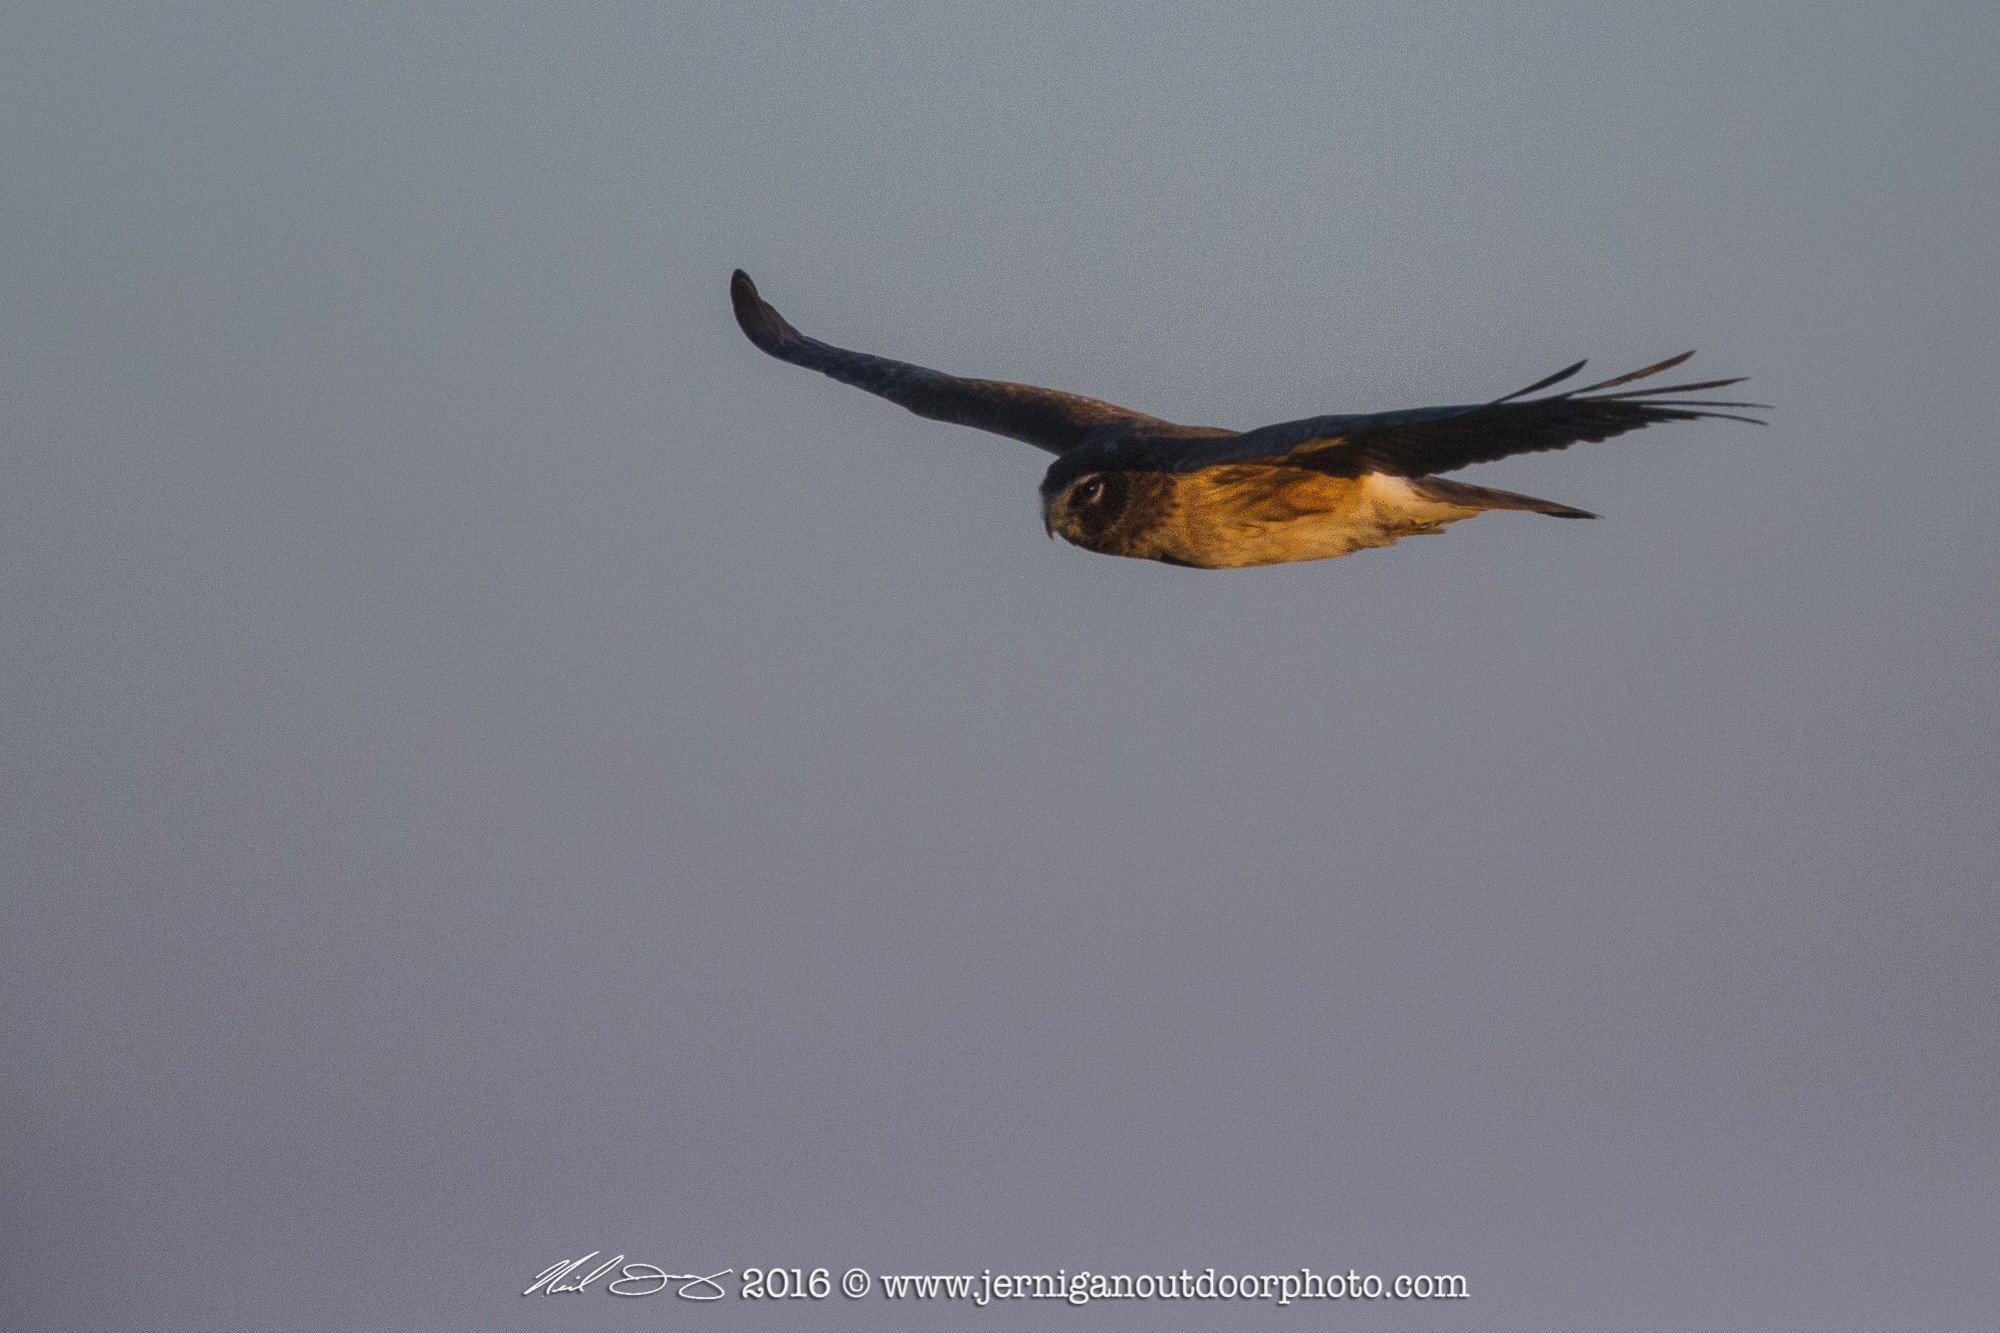 Northern Harrier hunting for small birds and mammals along a canal.